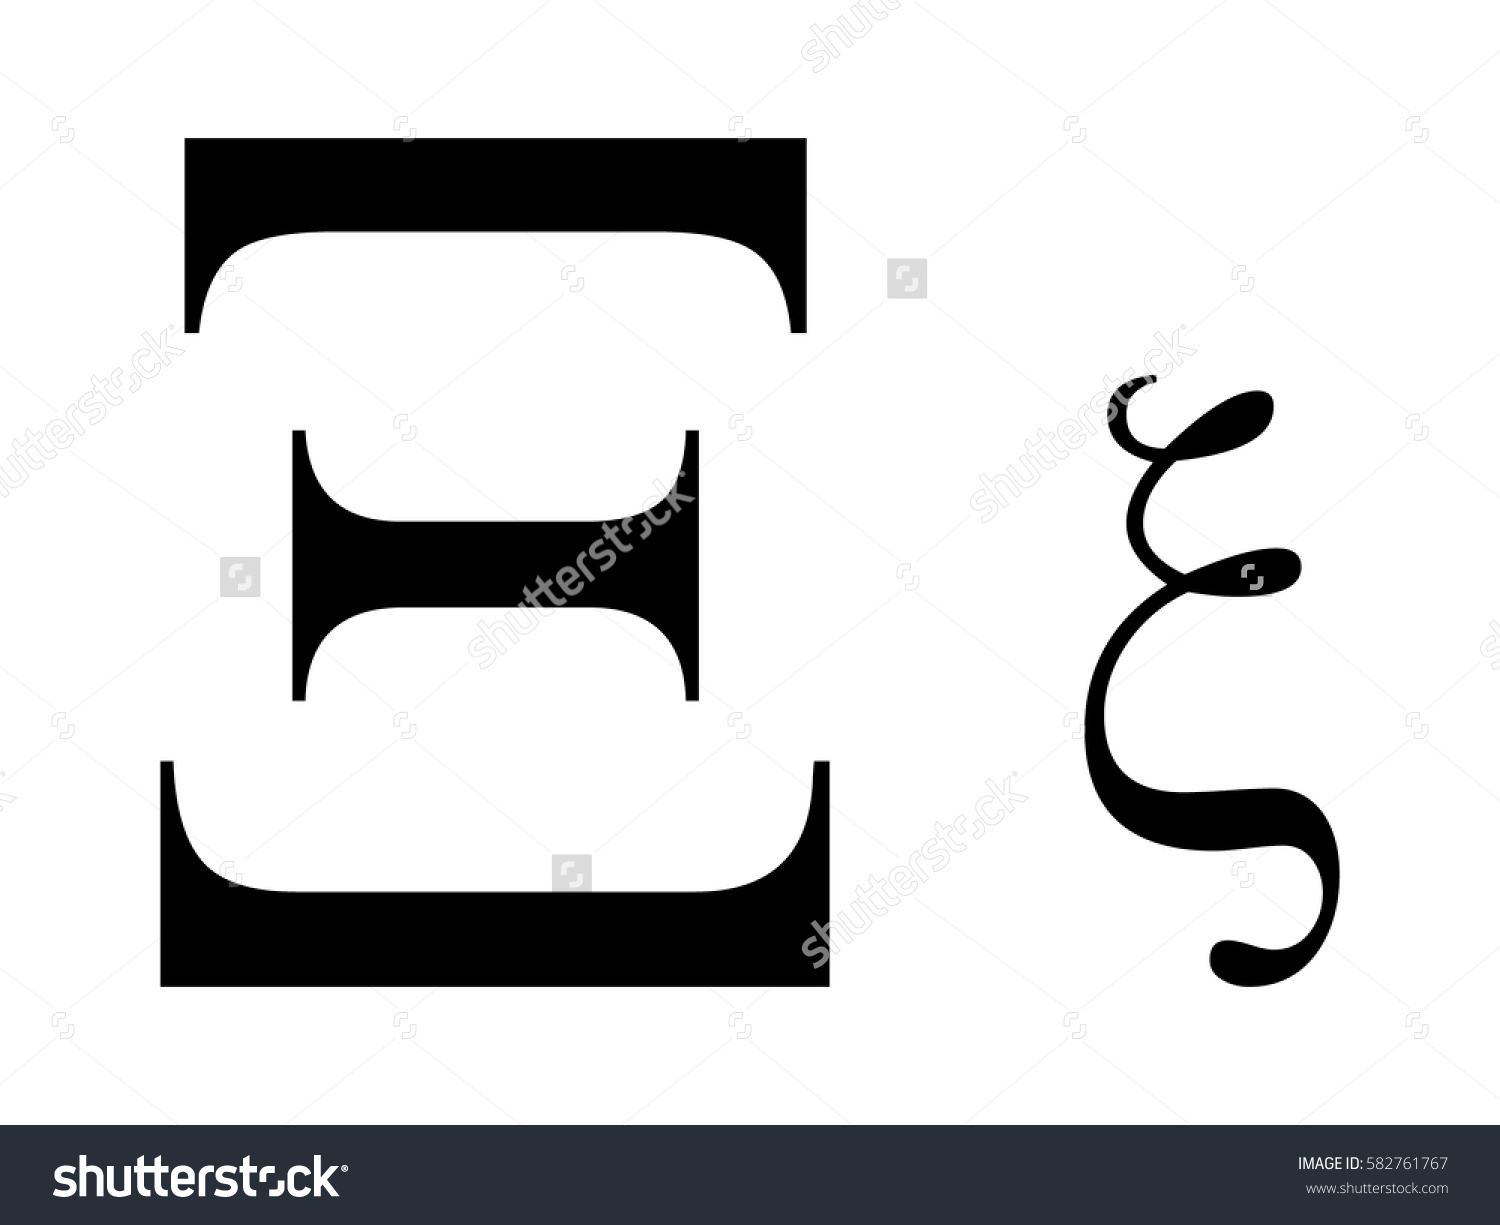 Xi greek letter clipart svg black and white library Vector Illustration Greek Letter Xi Stock Vector 582761767 ... svg black and white library